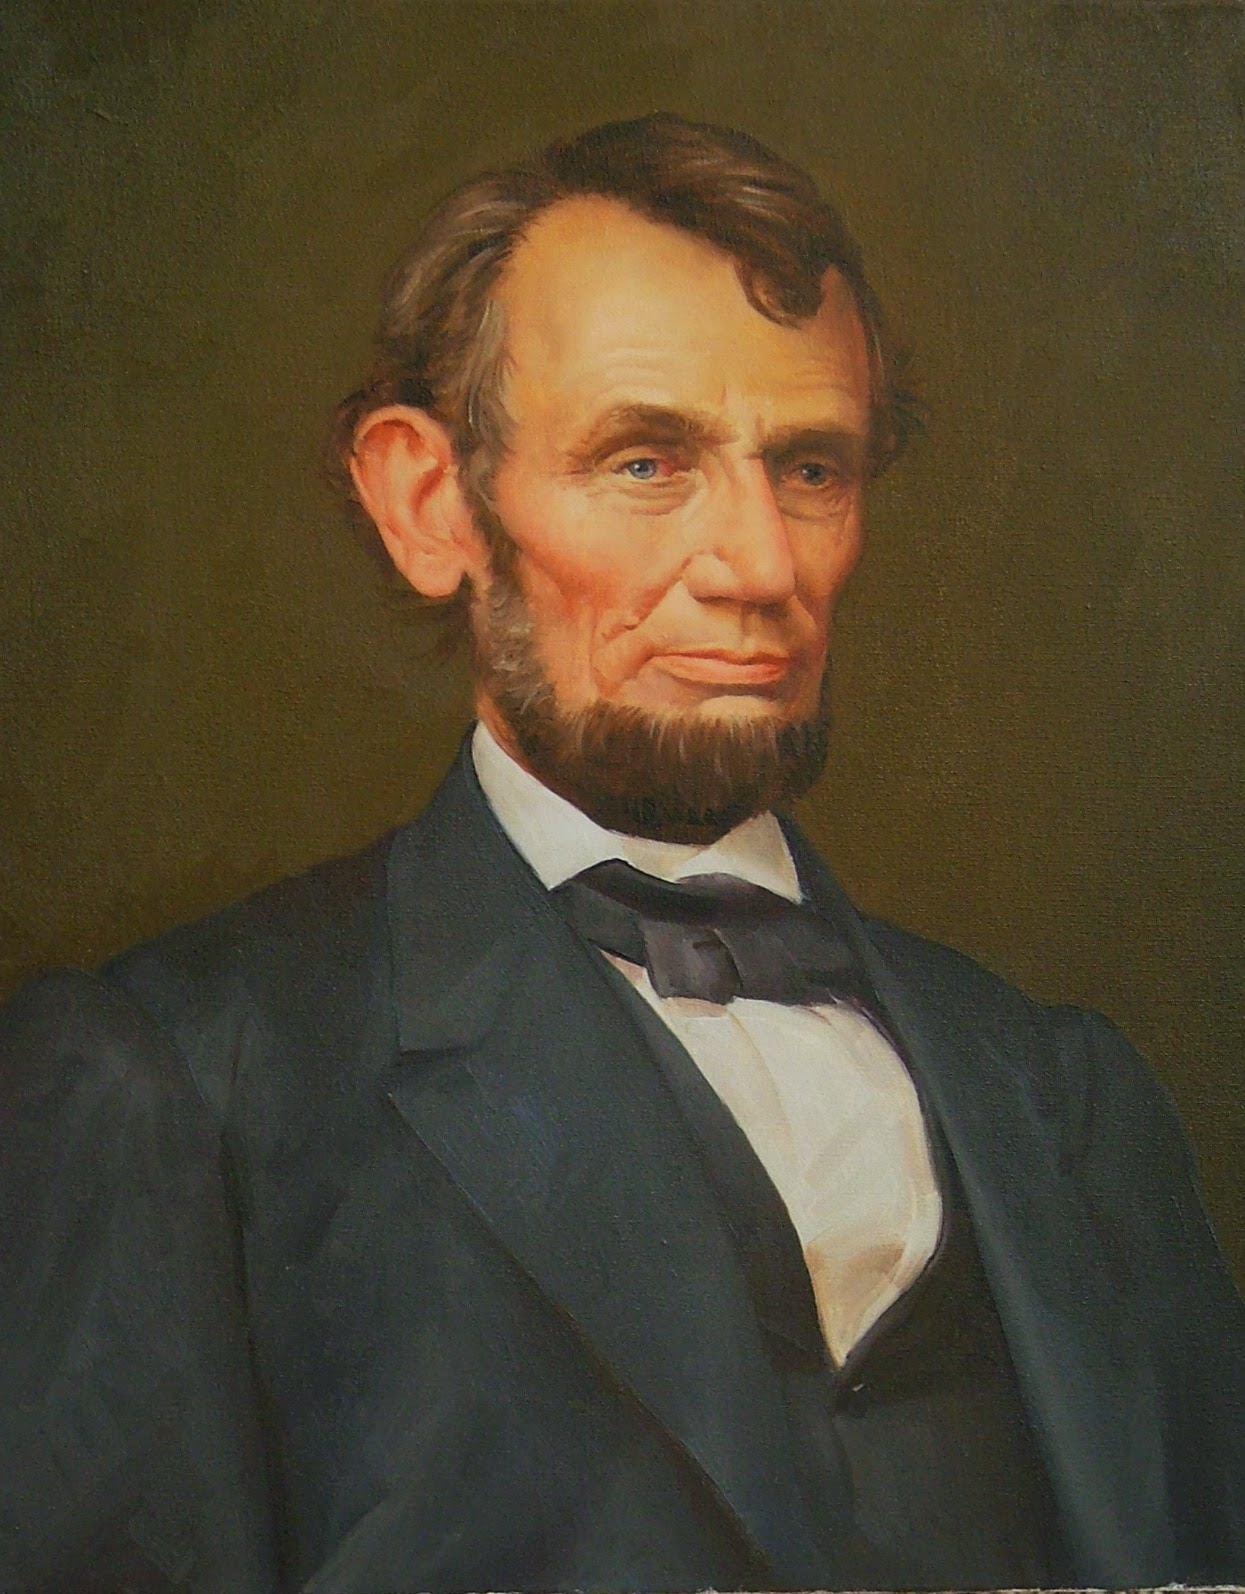 abraham lincoln as the president of He led the united states through its civil war and was famously assassinated in april 1865 but how much do you know about abraham lincoln, the 16th president of the united states.